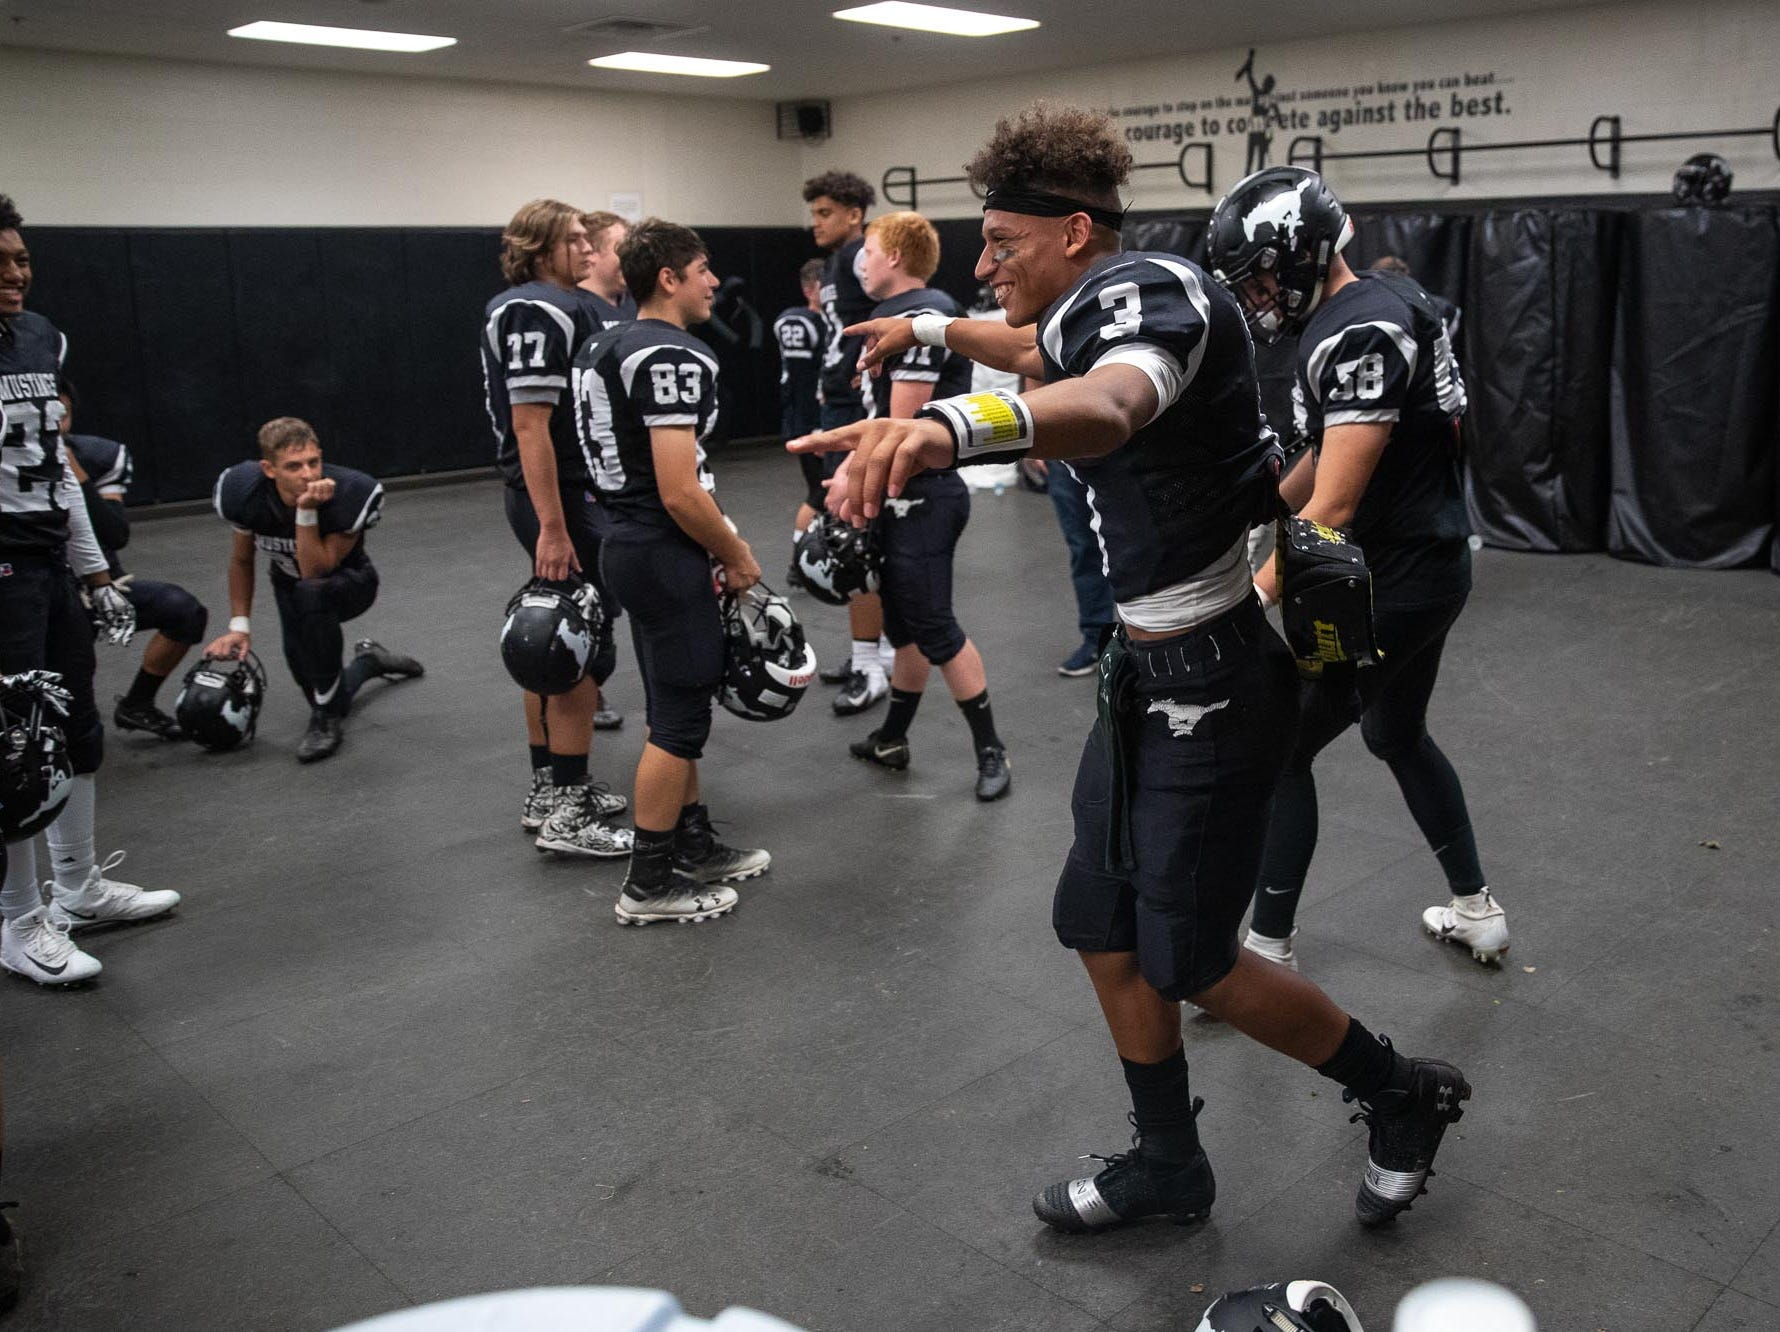 South Western's Jalen Bradford dances in the locker room before a football game between South Western and Dallastown, Friday, Sept. 14, 2018, at South Western High School in Penn Township. Dallastown won, 35-7.